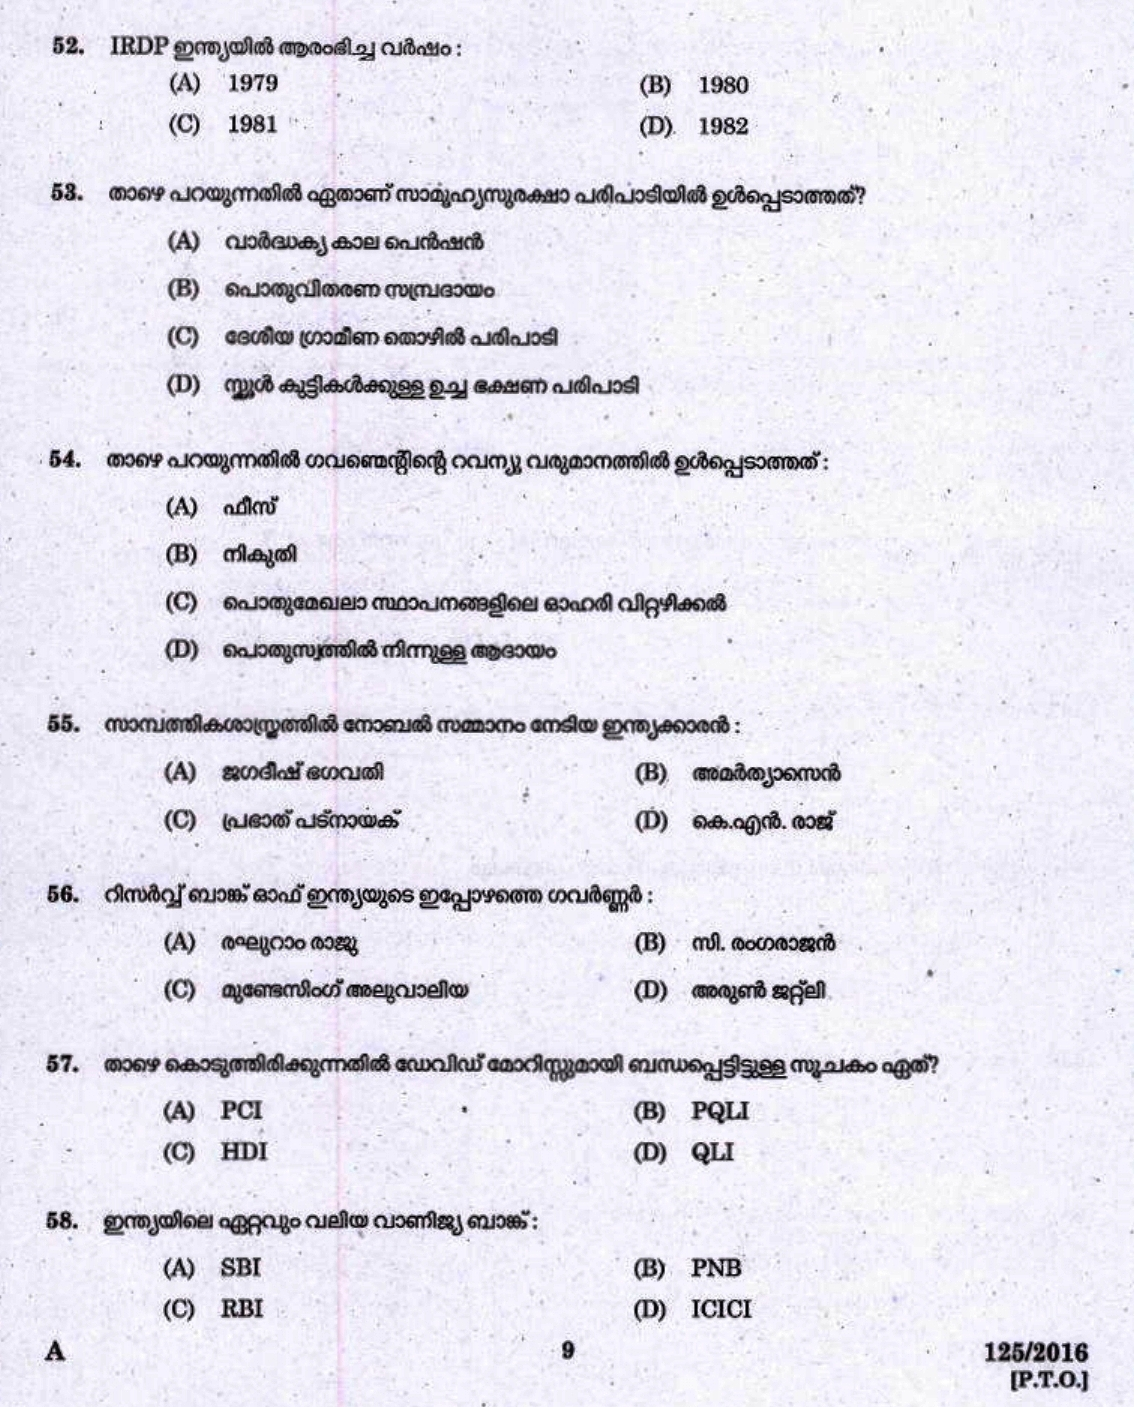 High School Assistant - Social Studies (125/2016) Question Paper with Answer Key